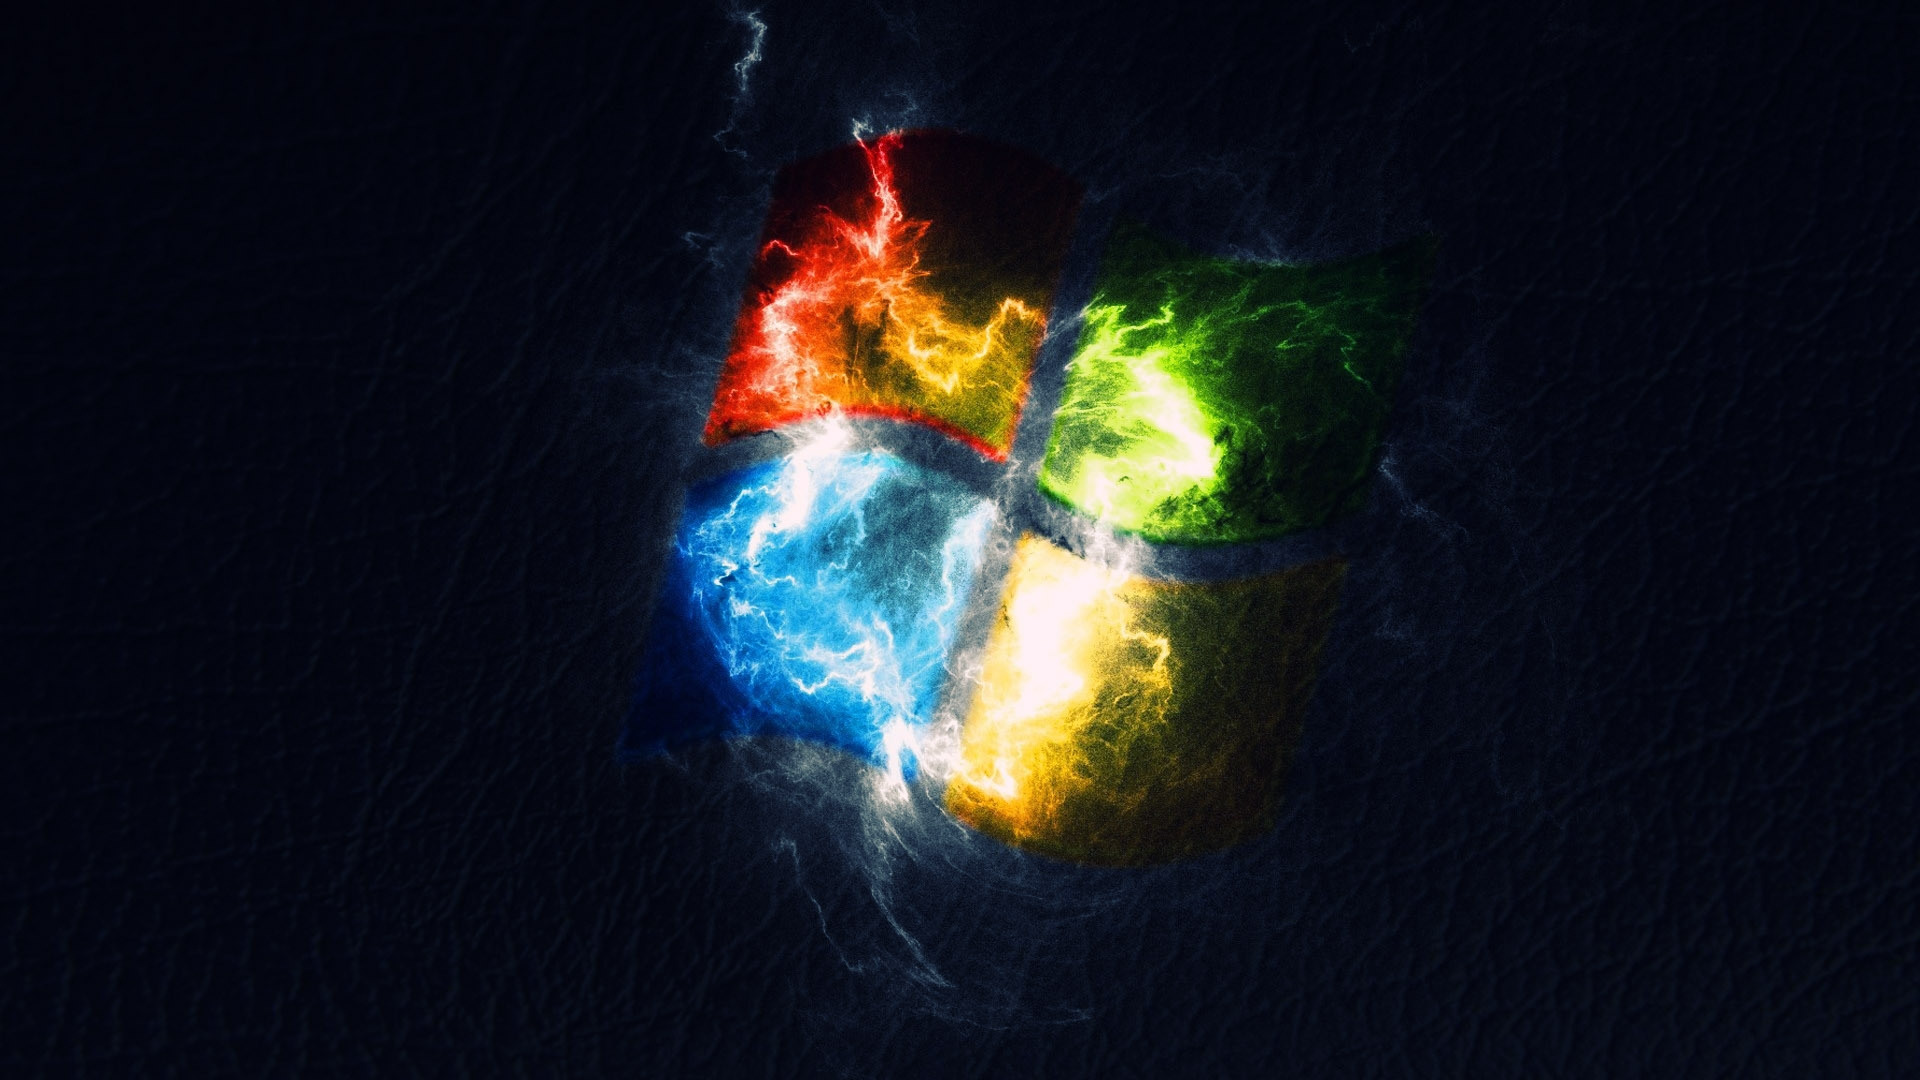 Abstract Wallpapers HD 1080p 1920x1080